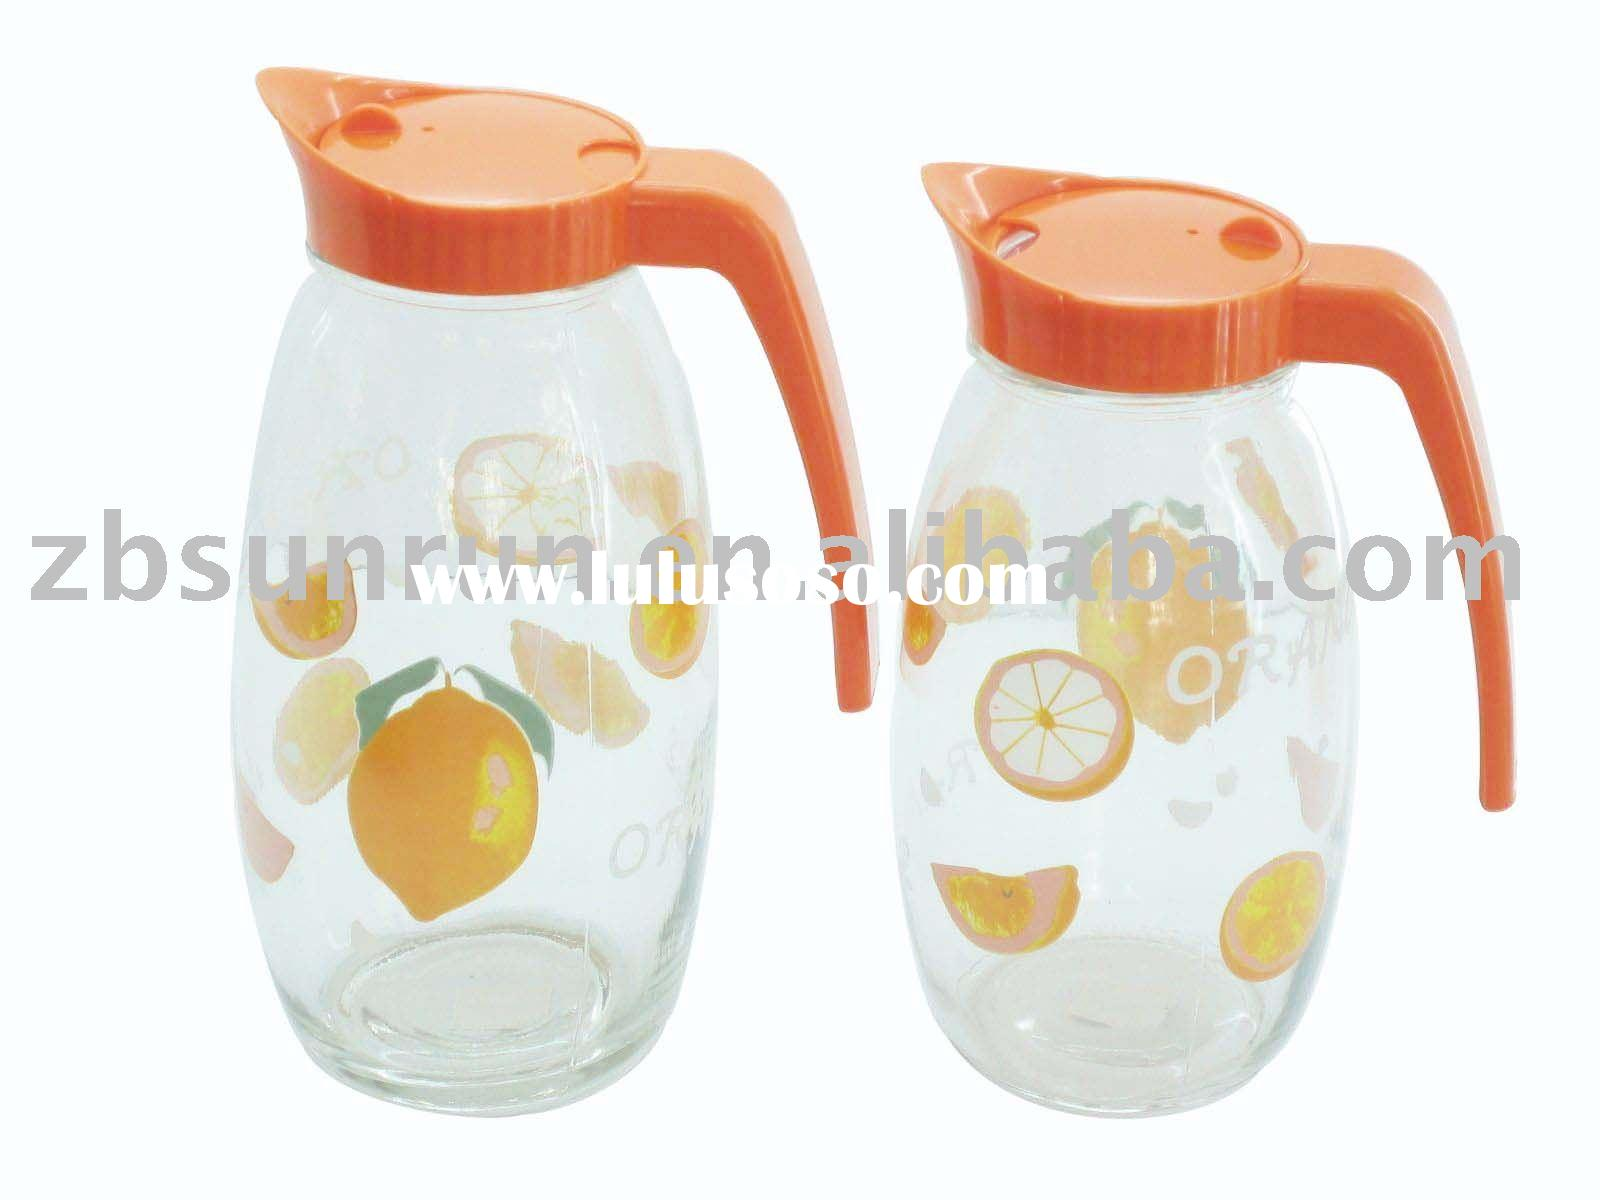 Glass Juice Jar with plastic Lid and Decal